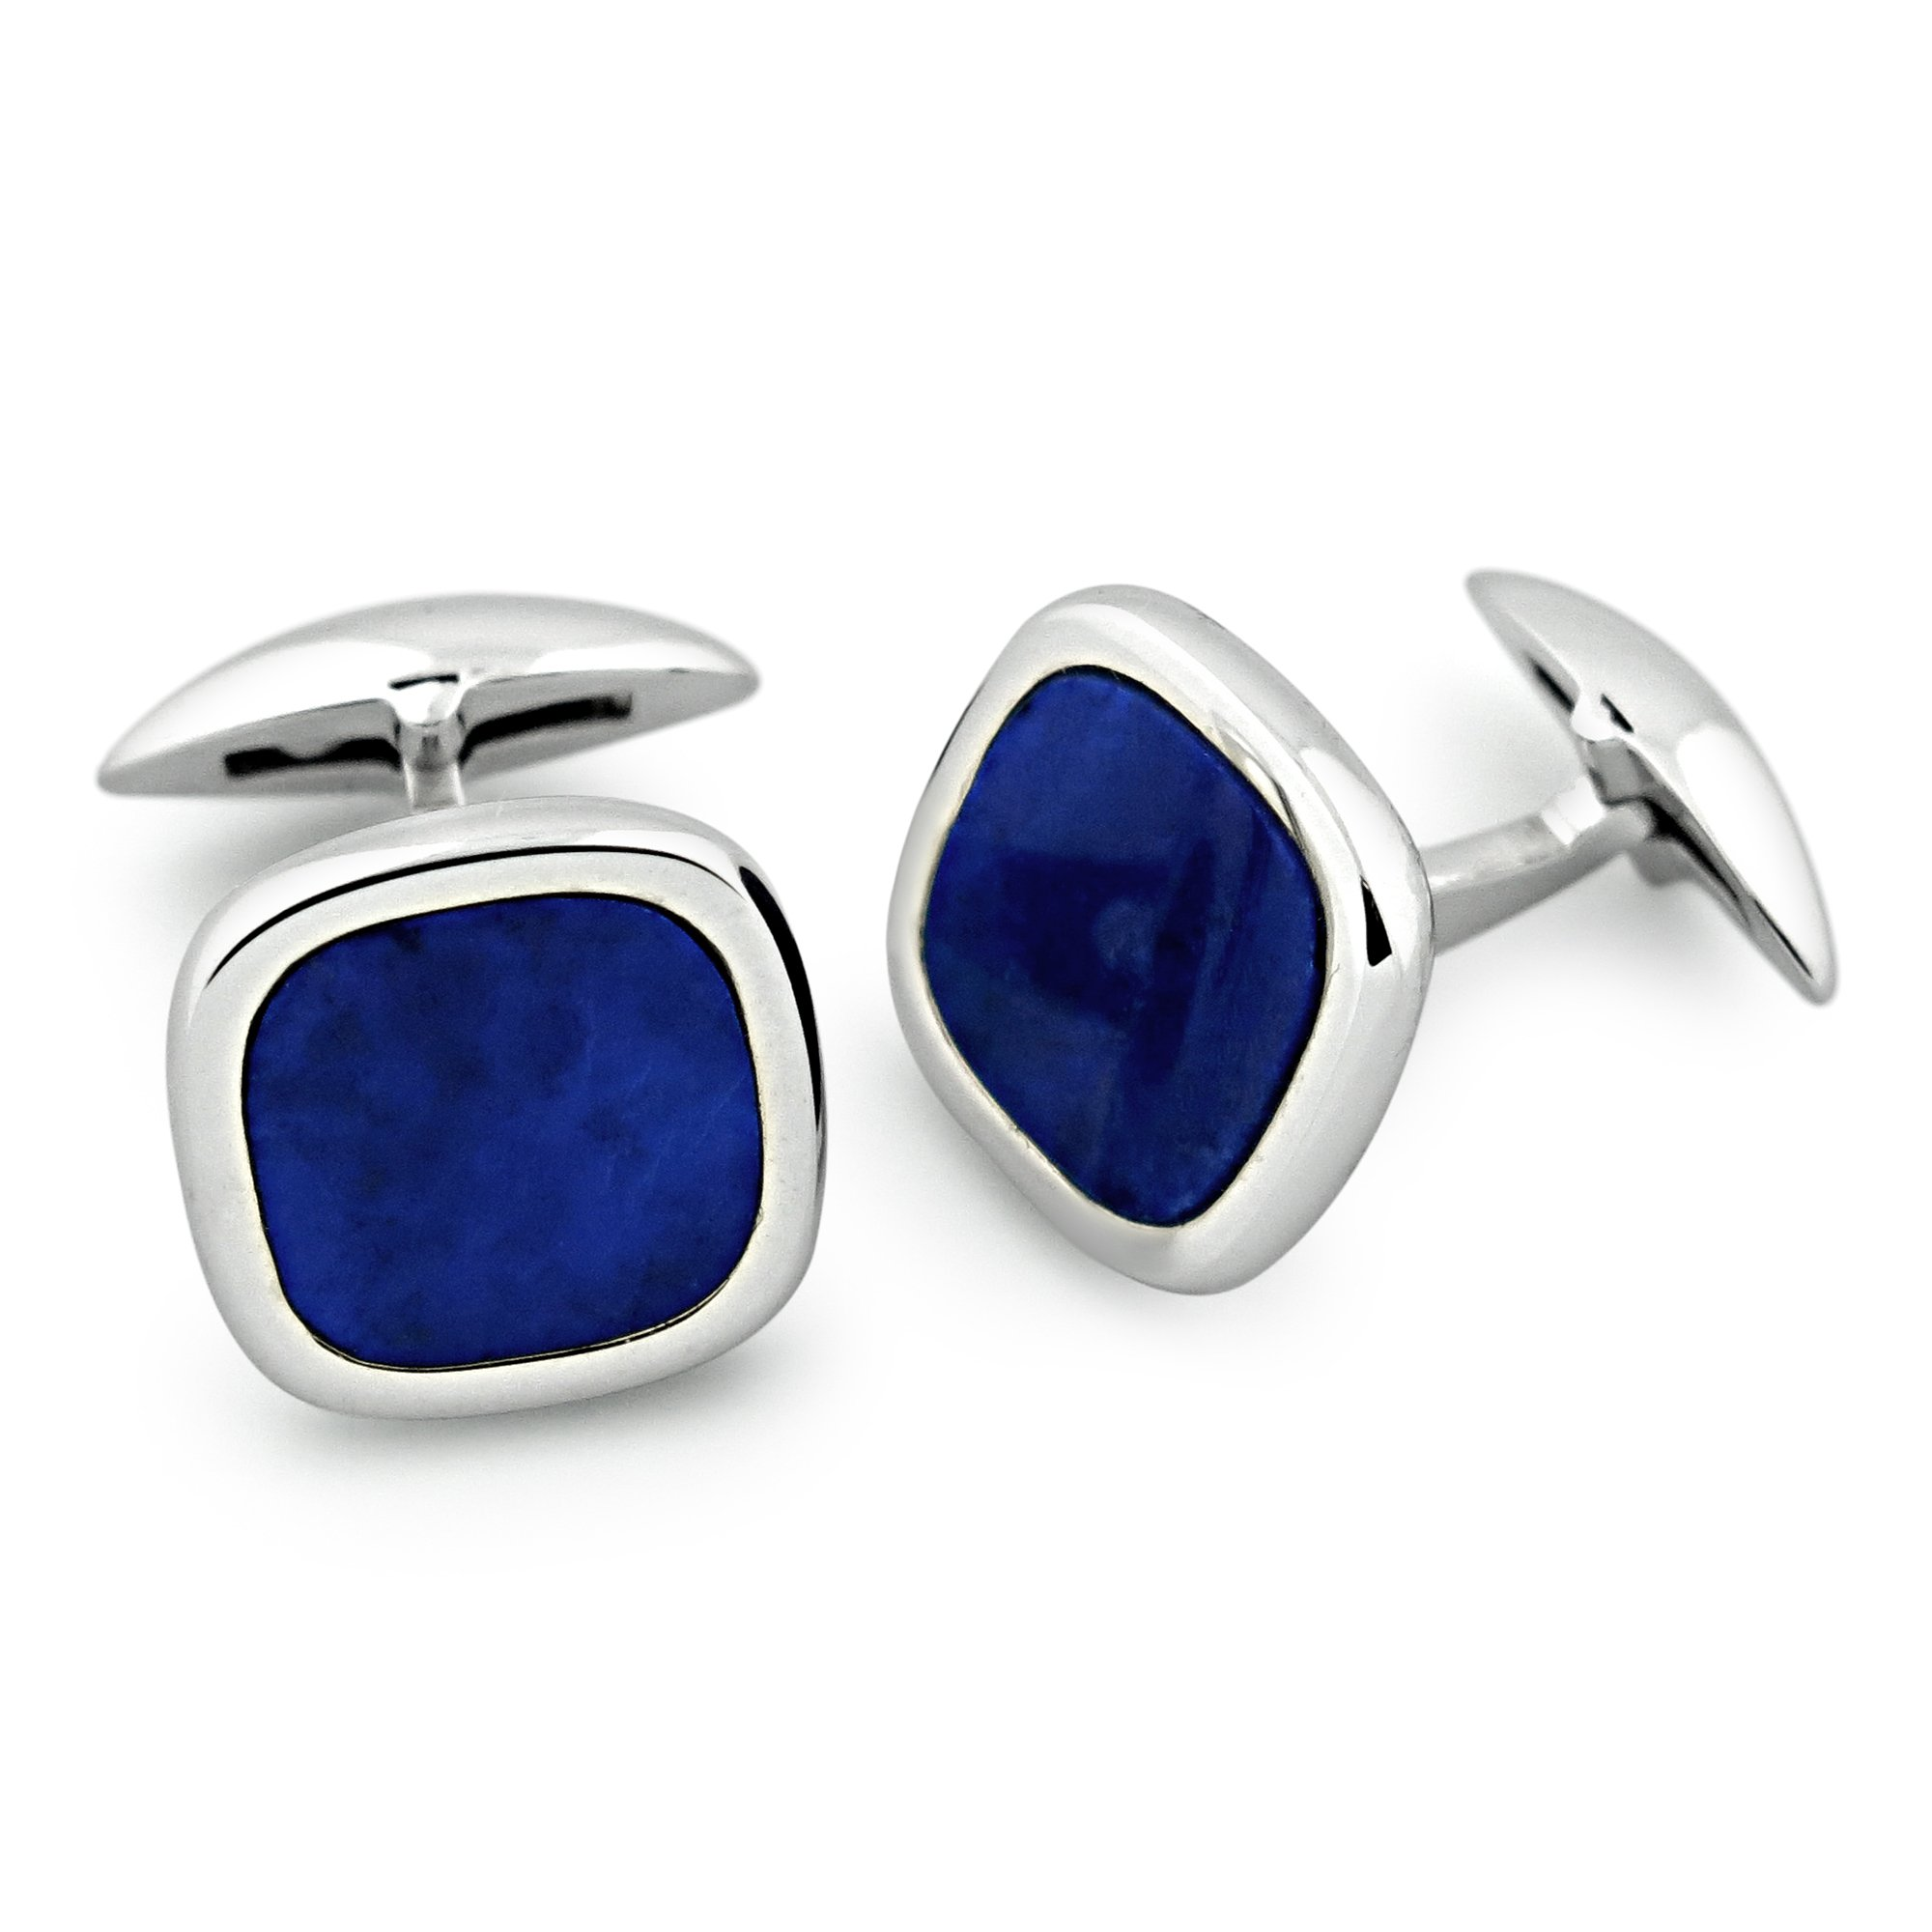 Zsamuel Mens Sterling Silver Lapis Rounded Square Cufflinks by Z.Samuel